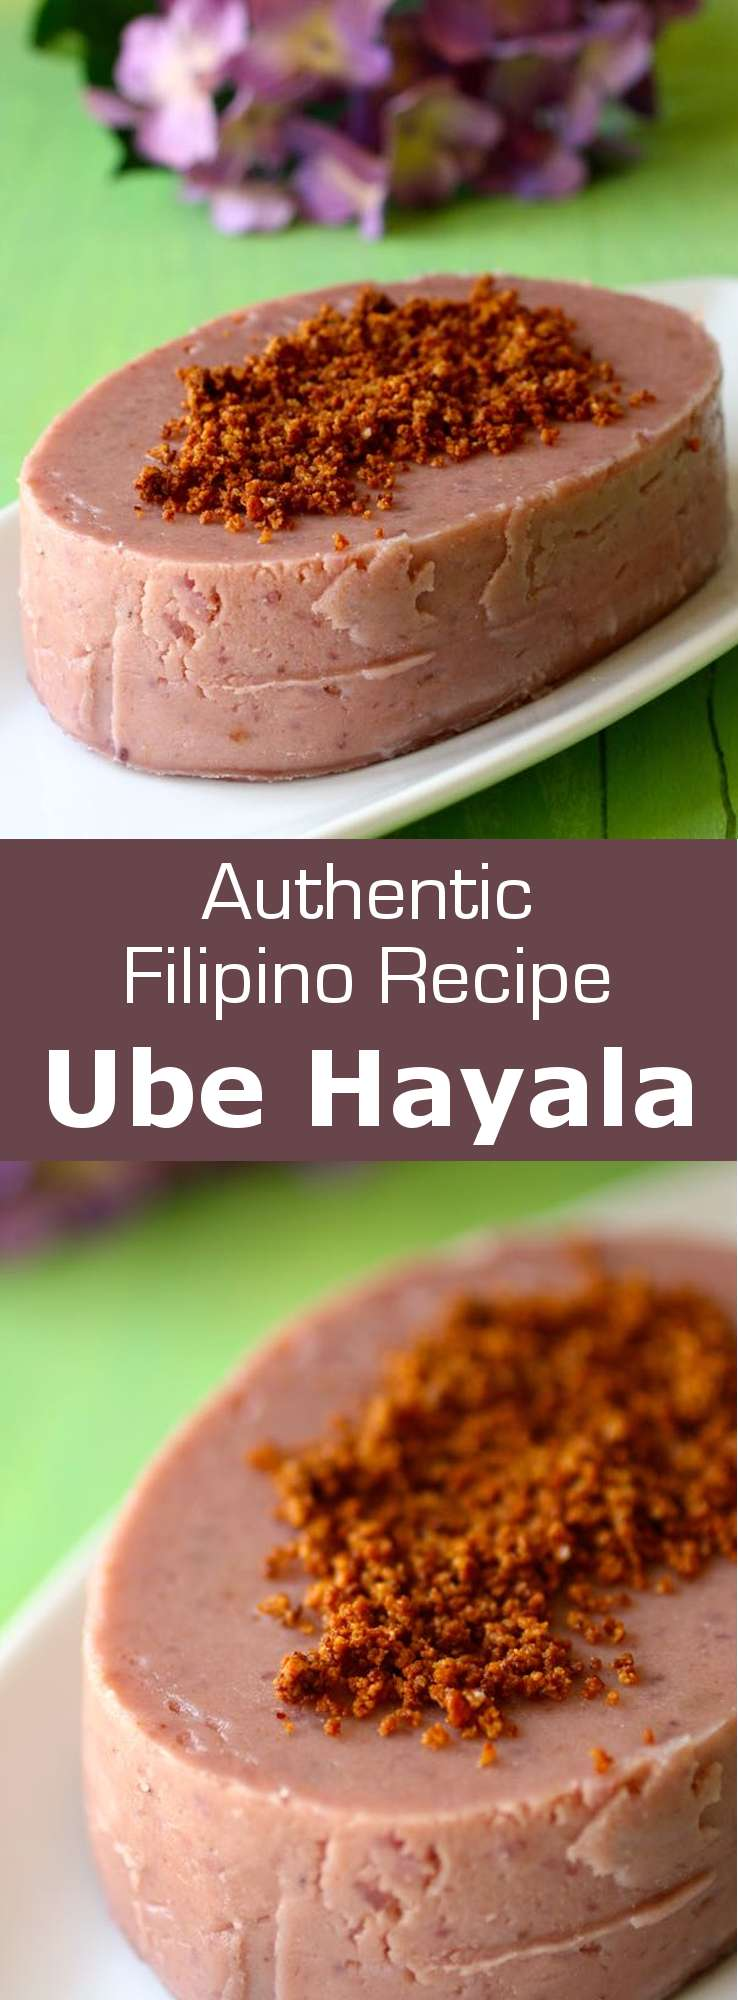 Ube halaya is a traditional Filipino dessert made with purple yam, and often topped with toasted coconut, that is recognizable by its vivid violet color. #Philippines #196flavors